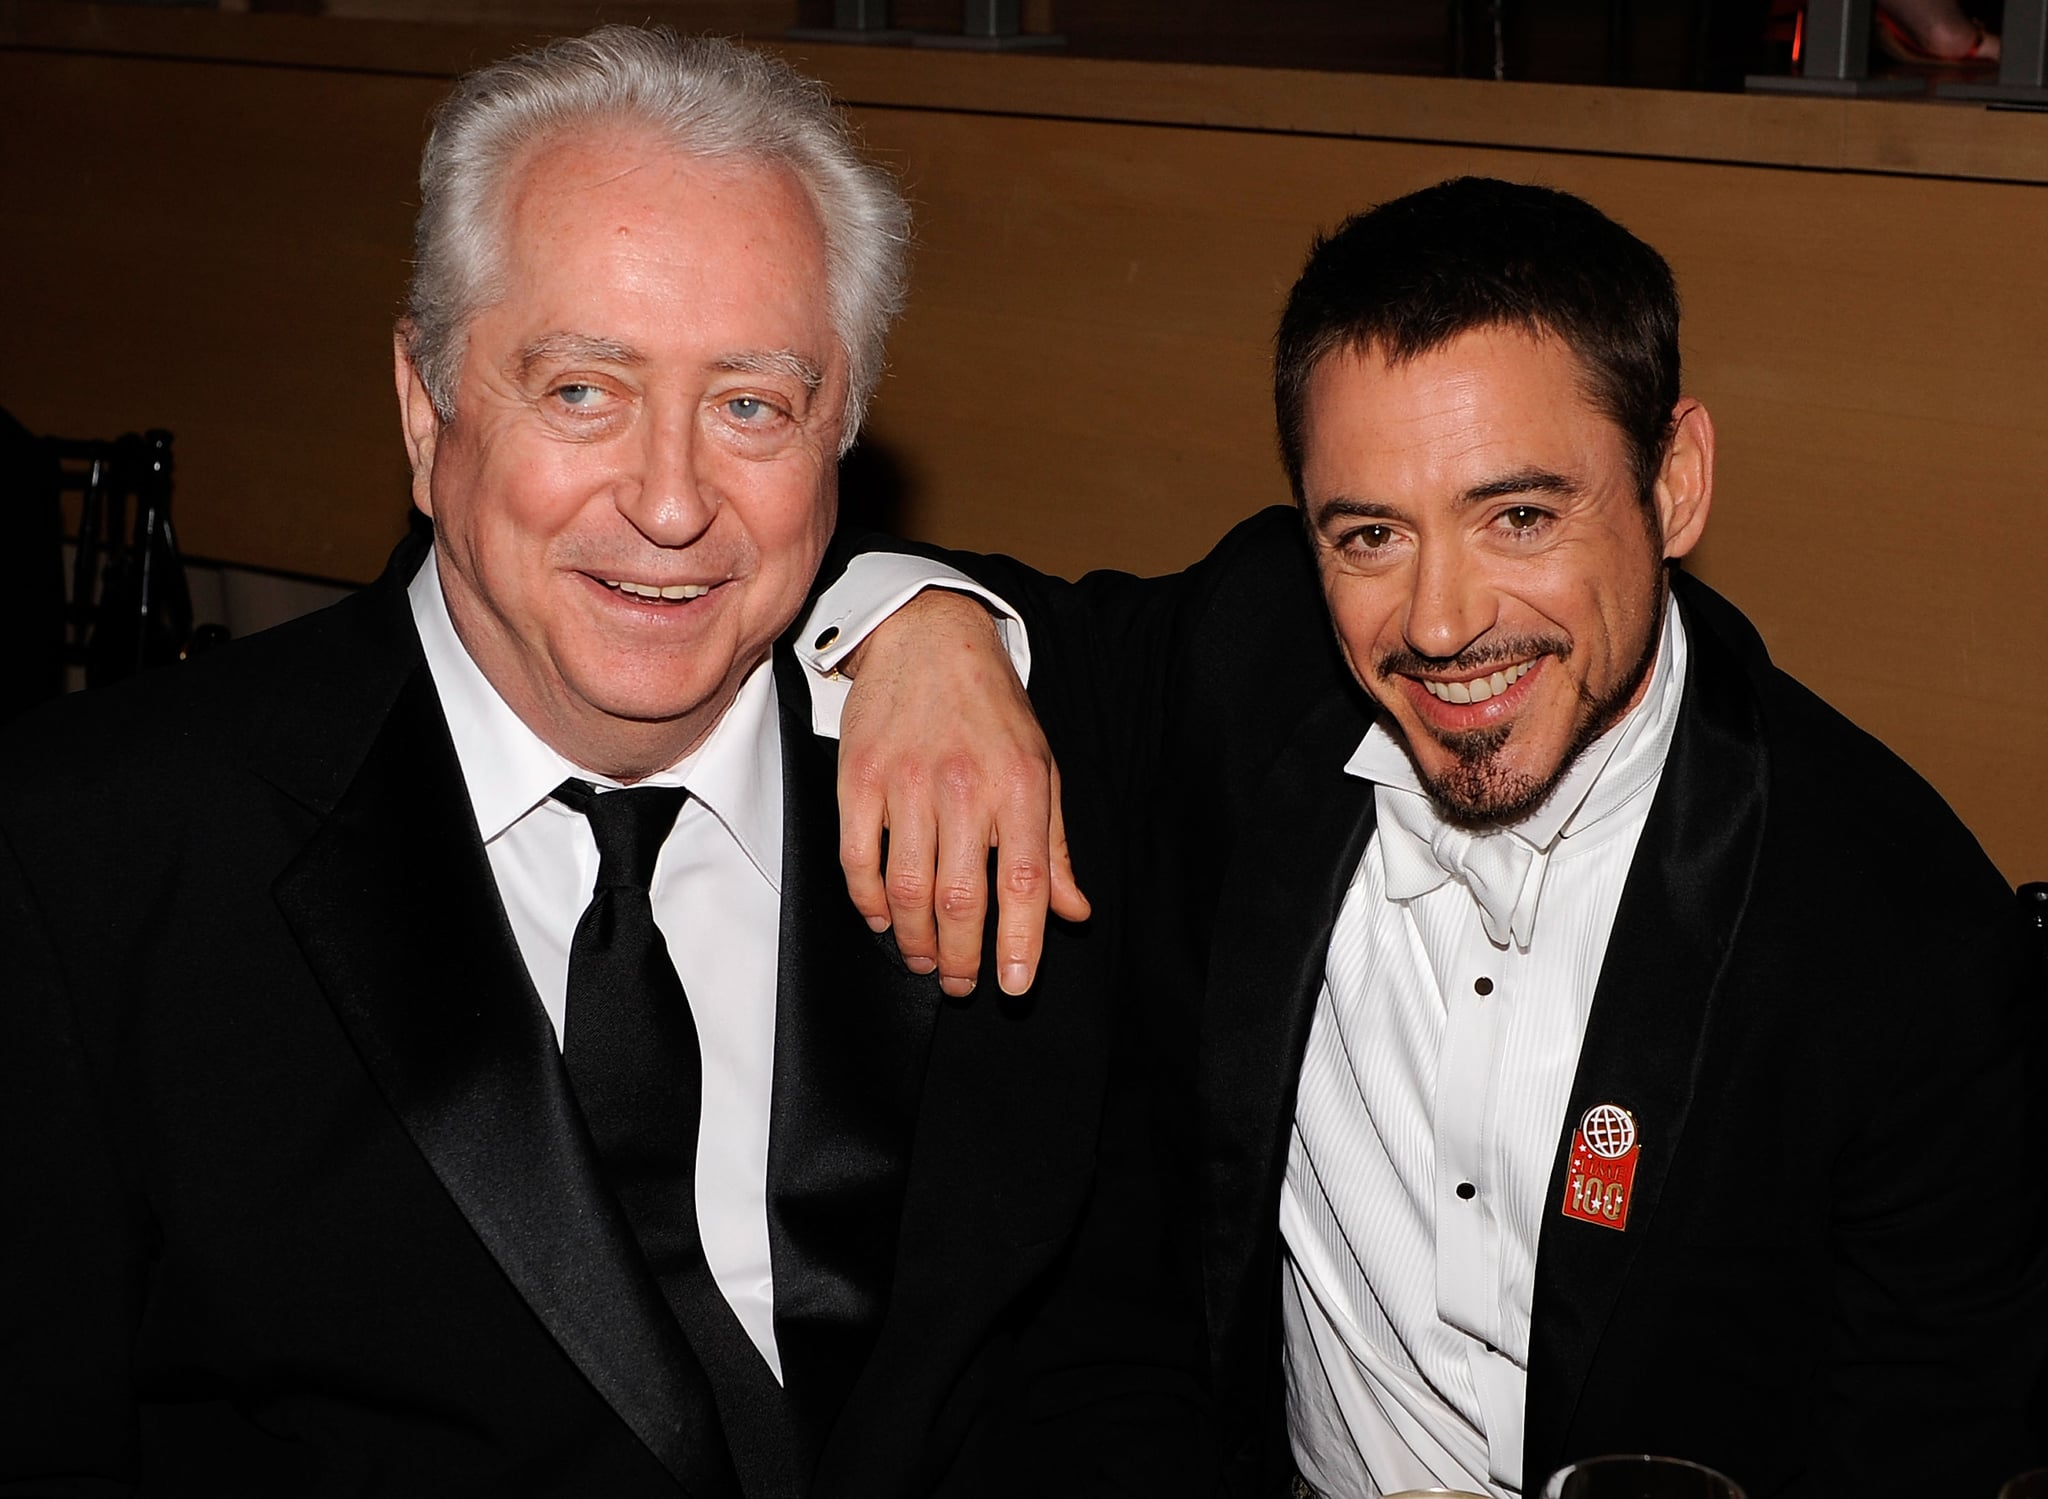 NEW YORK - MAY 08:  Director Robert Downey Sr. and actor Robert Downey Jr. attend Time's 100 Most Influential People in the World gala at Jazz at Lincoln Centre on May 8, 2008 in New York City.  (Photo by Larry Busacca/WireImage)